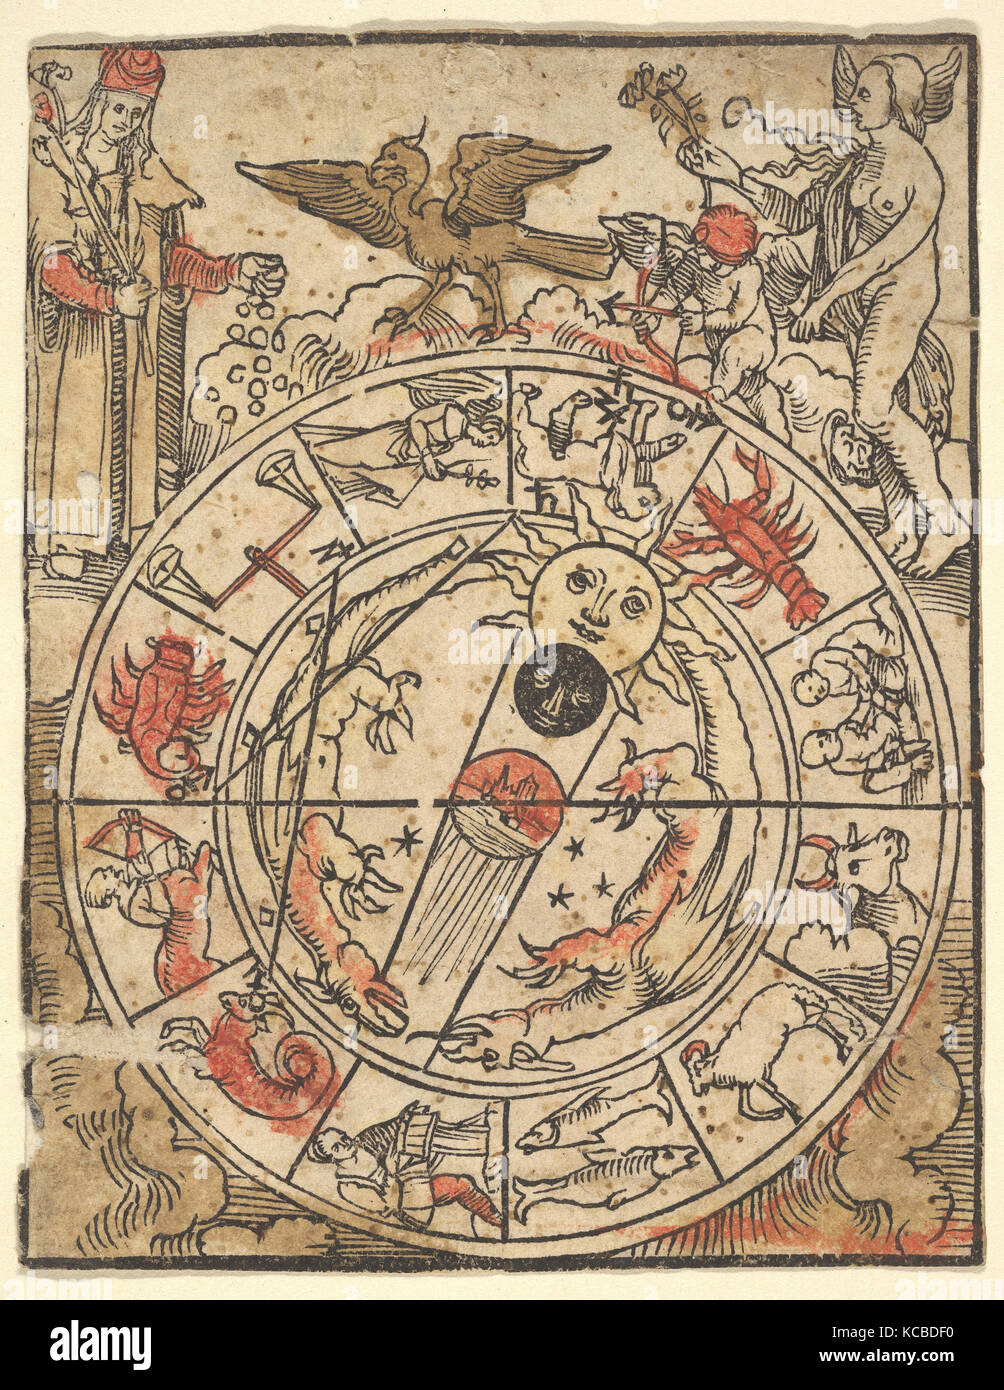 Chart of the Signs of the Zodiac with Venus, Cupid, and a Bishop Saint, Hans Baldung - Stock Image